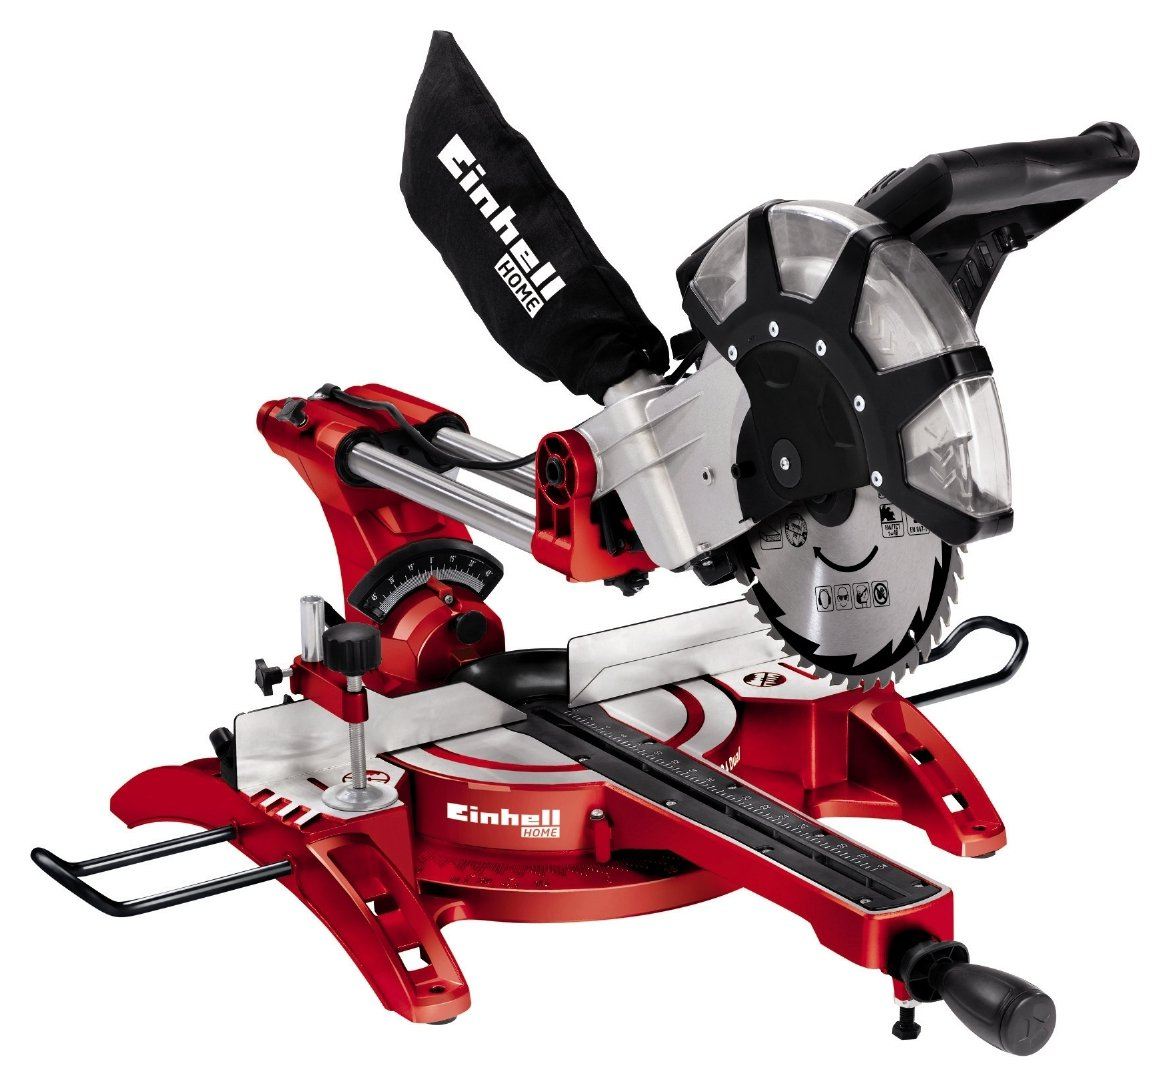 Einhell - 2350W 250mm (10) Double Bevel Sliding Mitre Saw